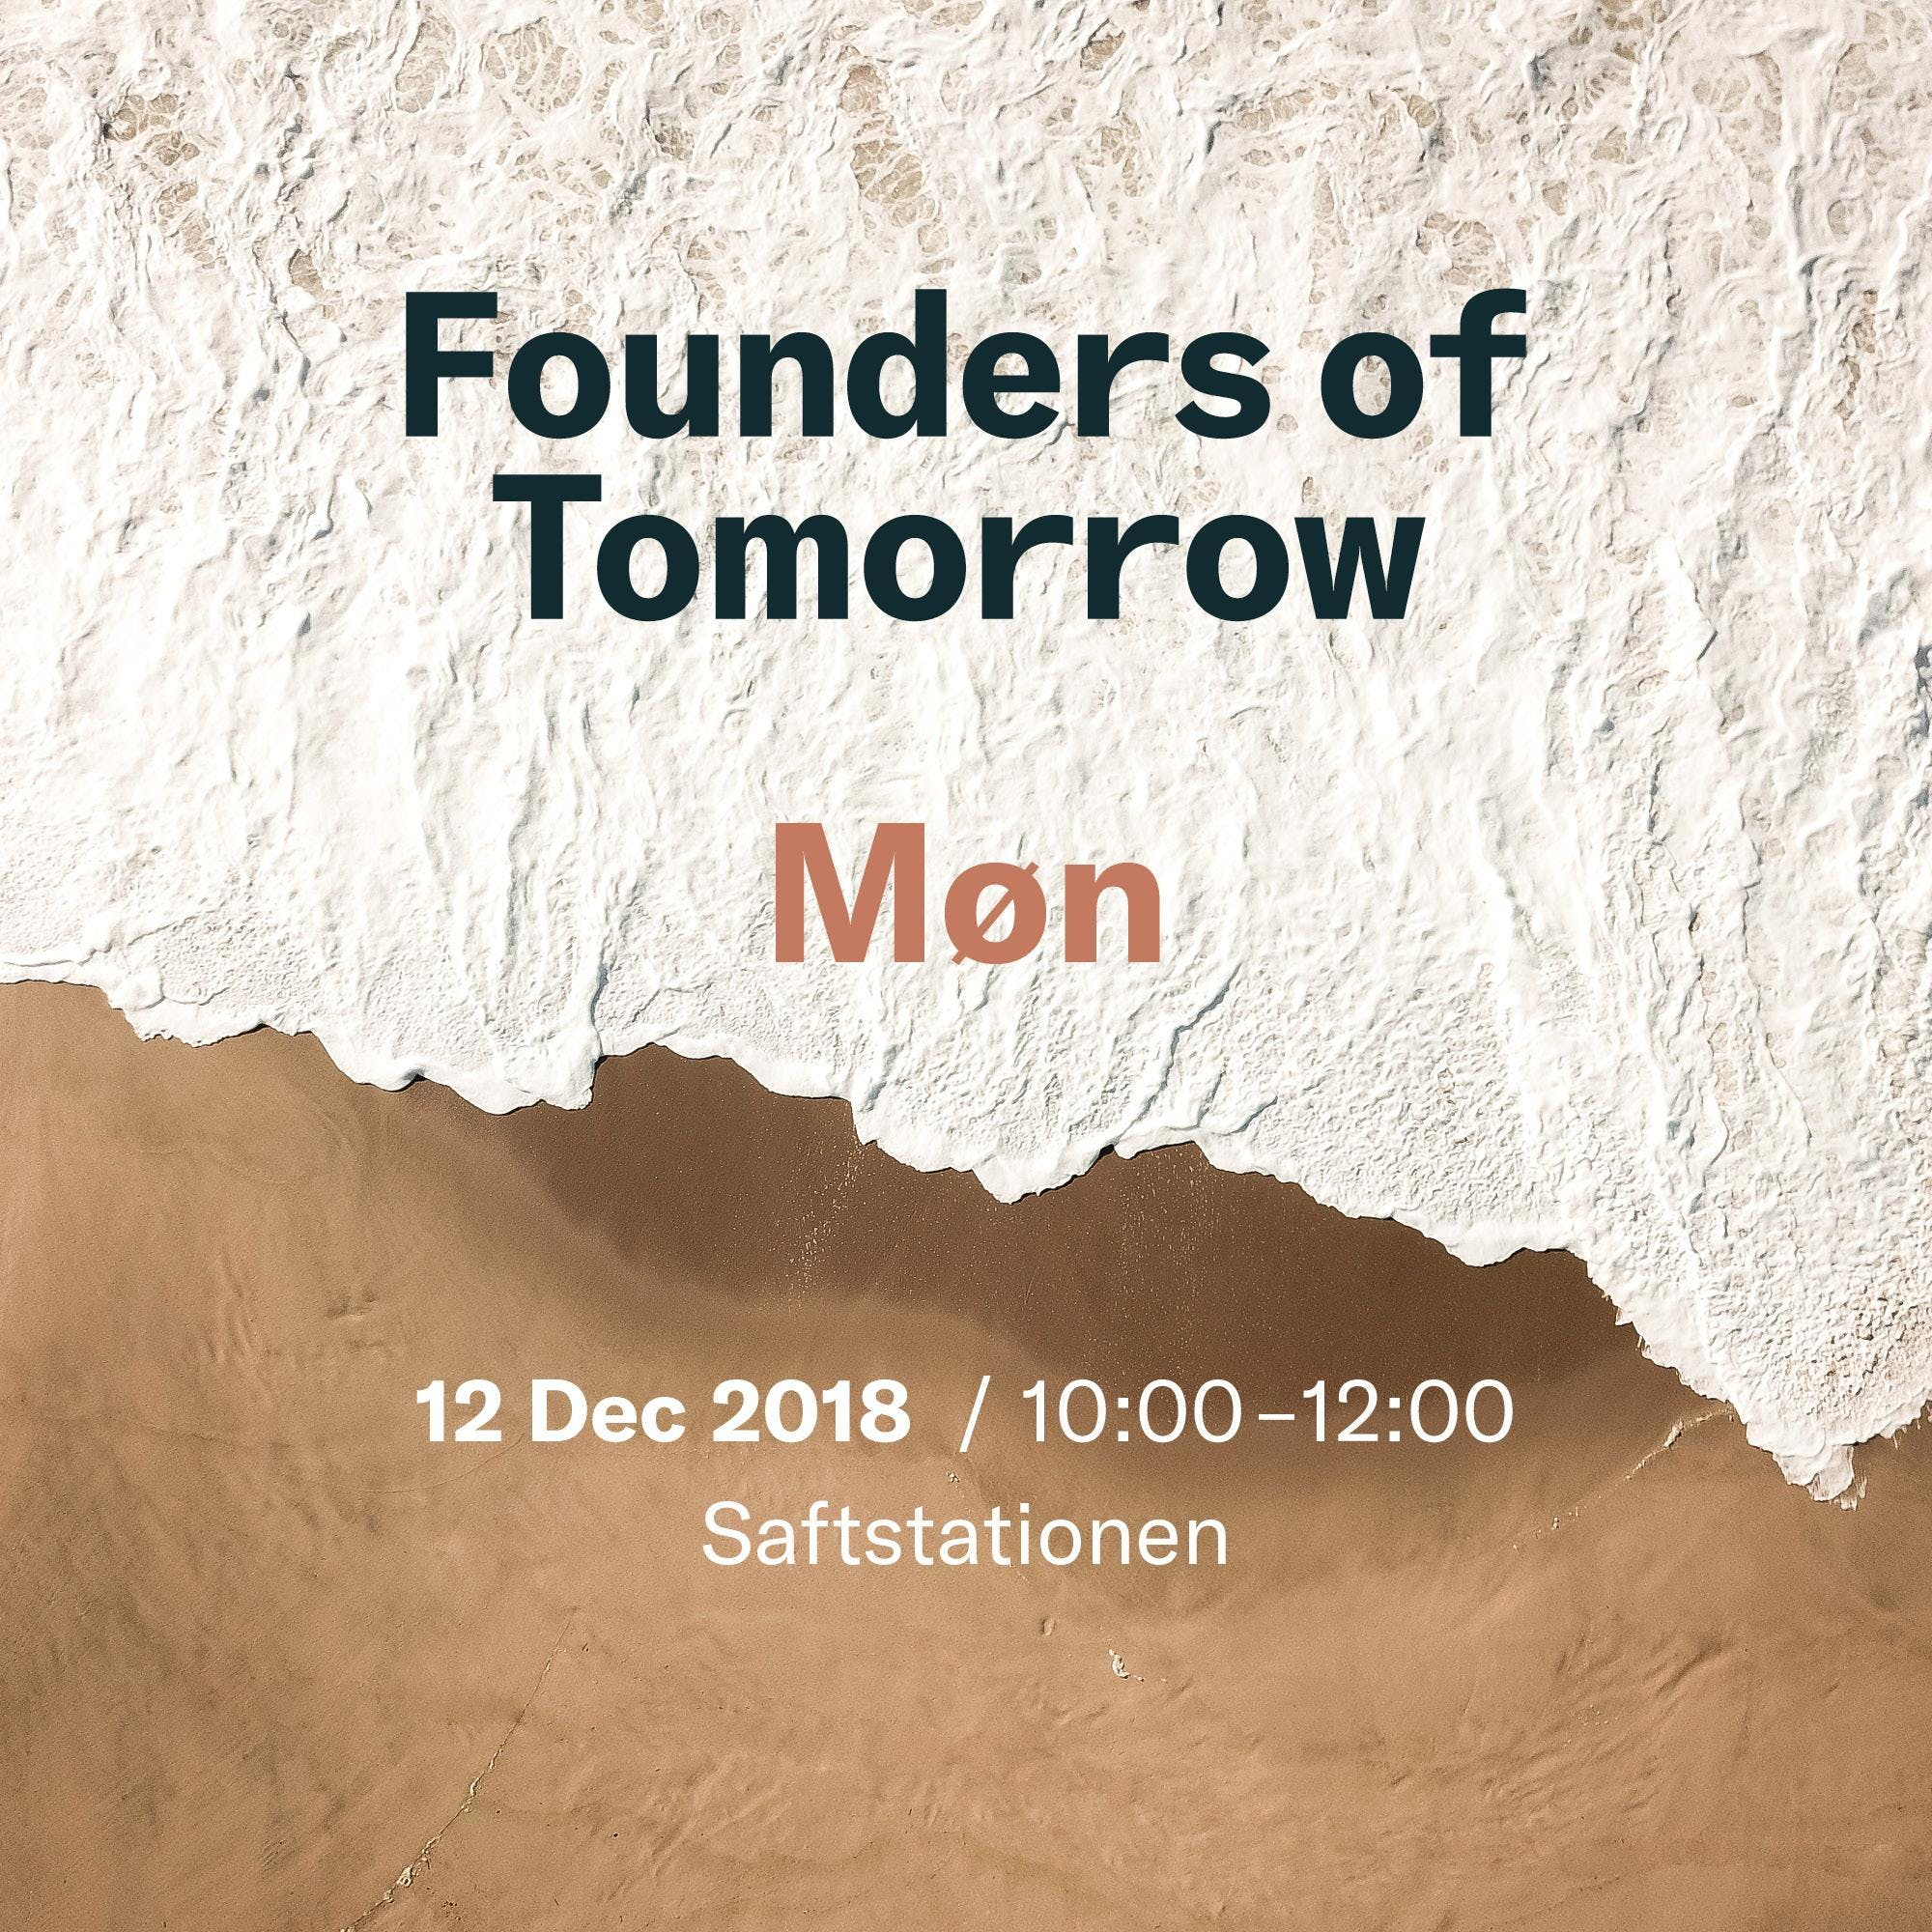 Founders of Tomorrow on the Road - Møn